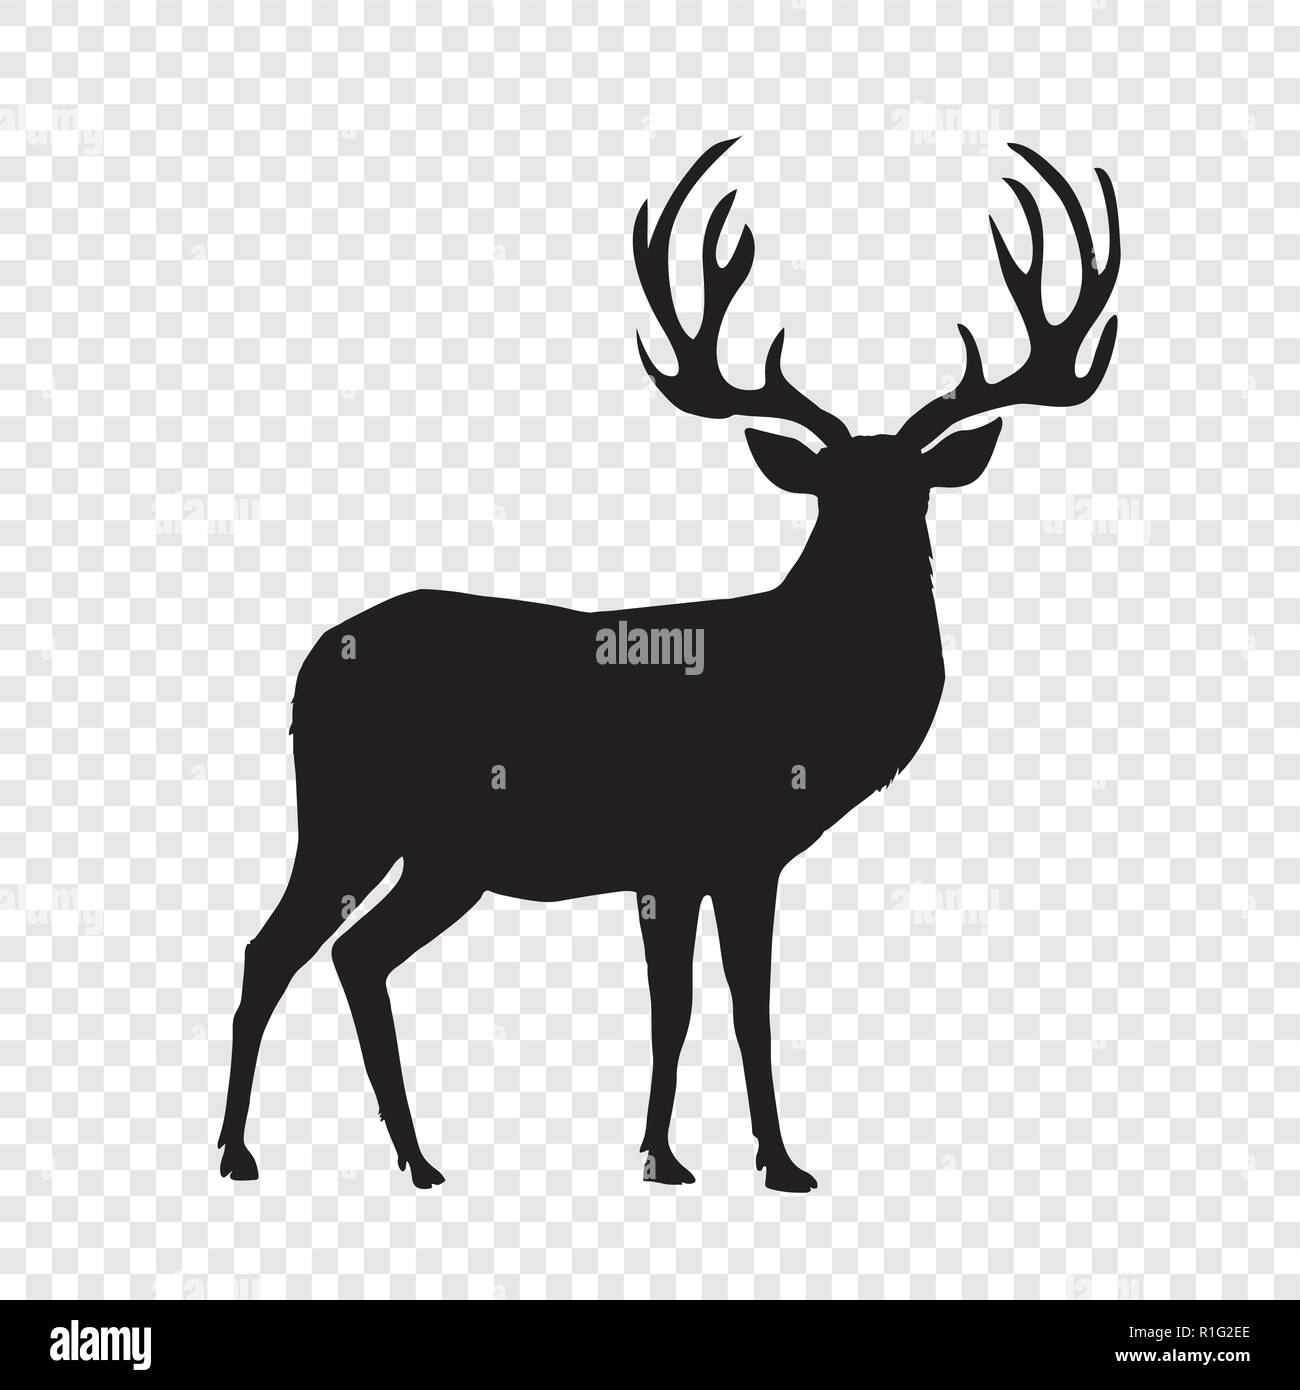 black silhouette of reindeer with big horns isolated on transparent